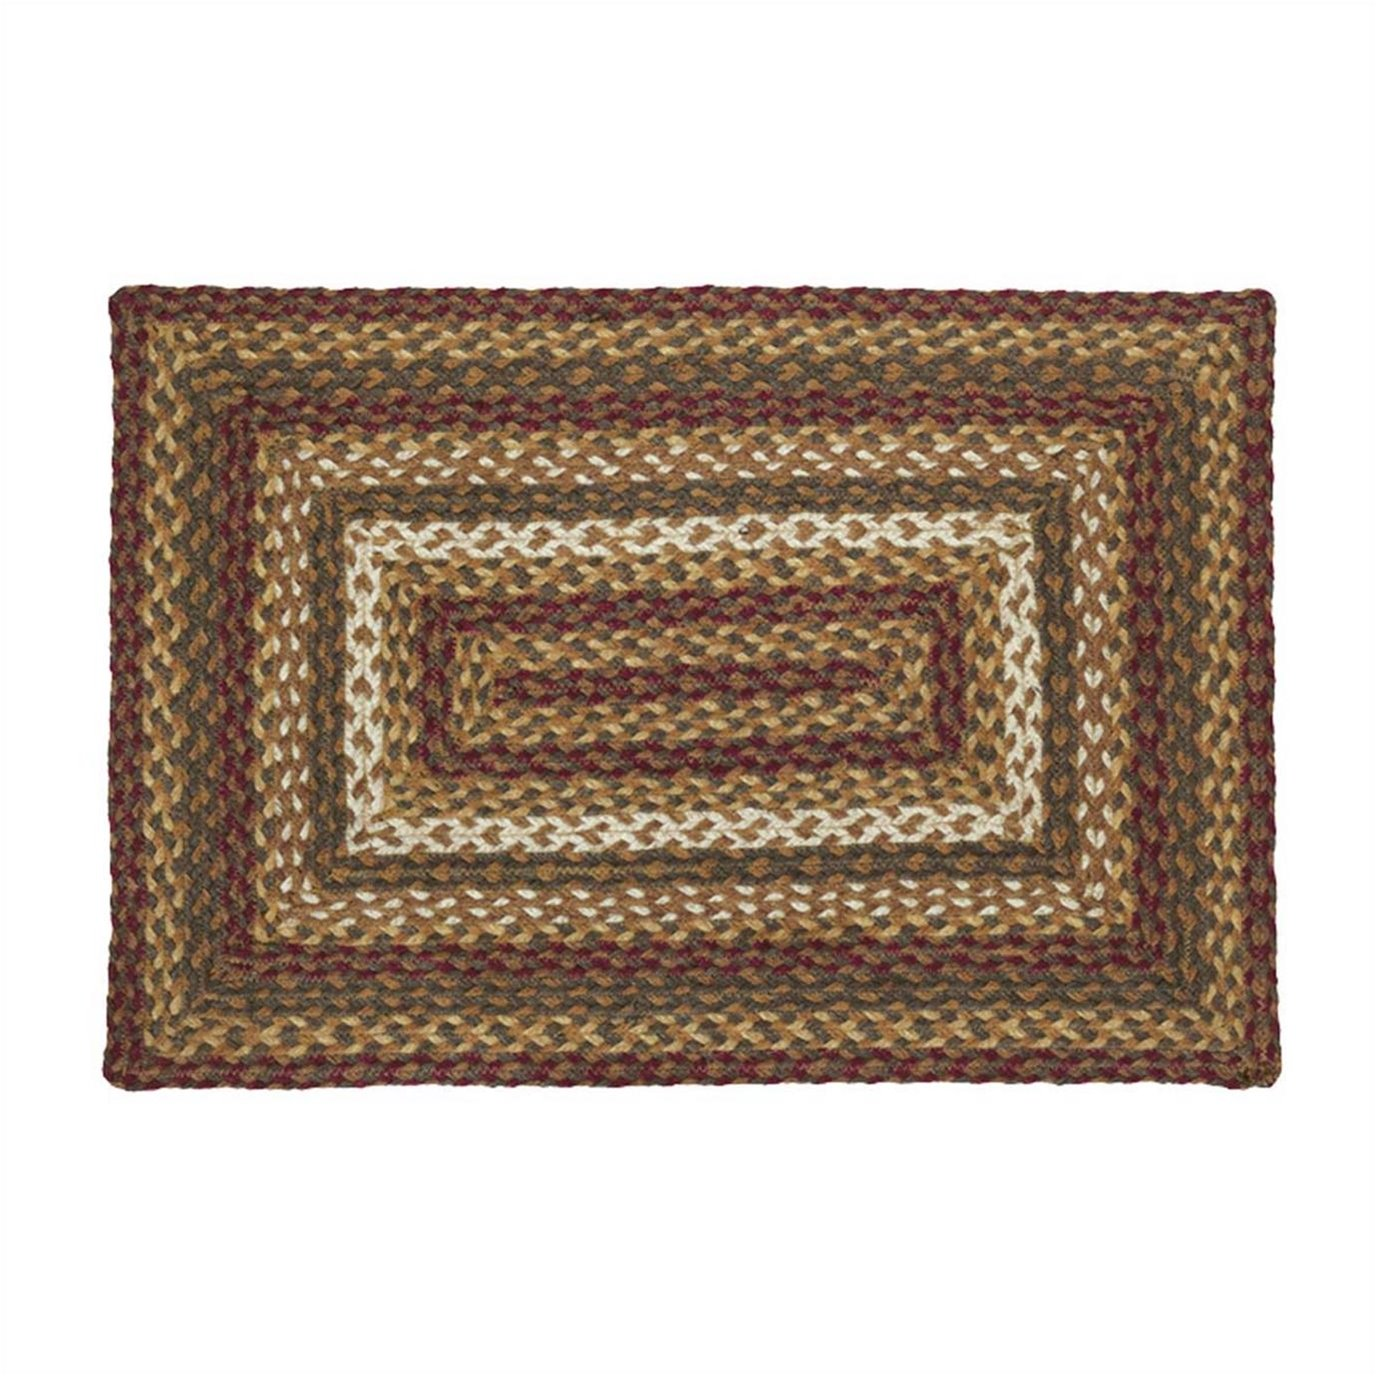 Tea Cabin Jute Rug Rectangular 20x30